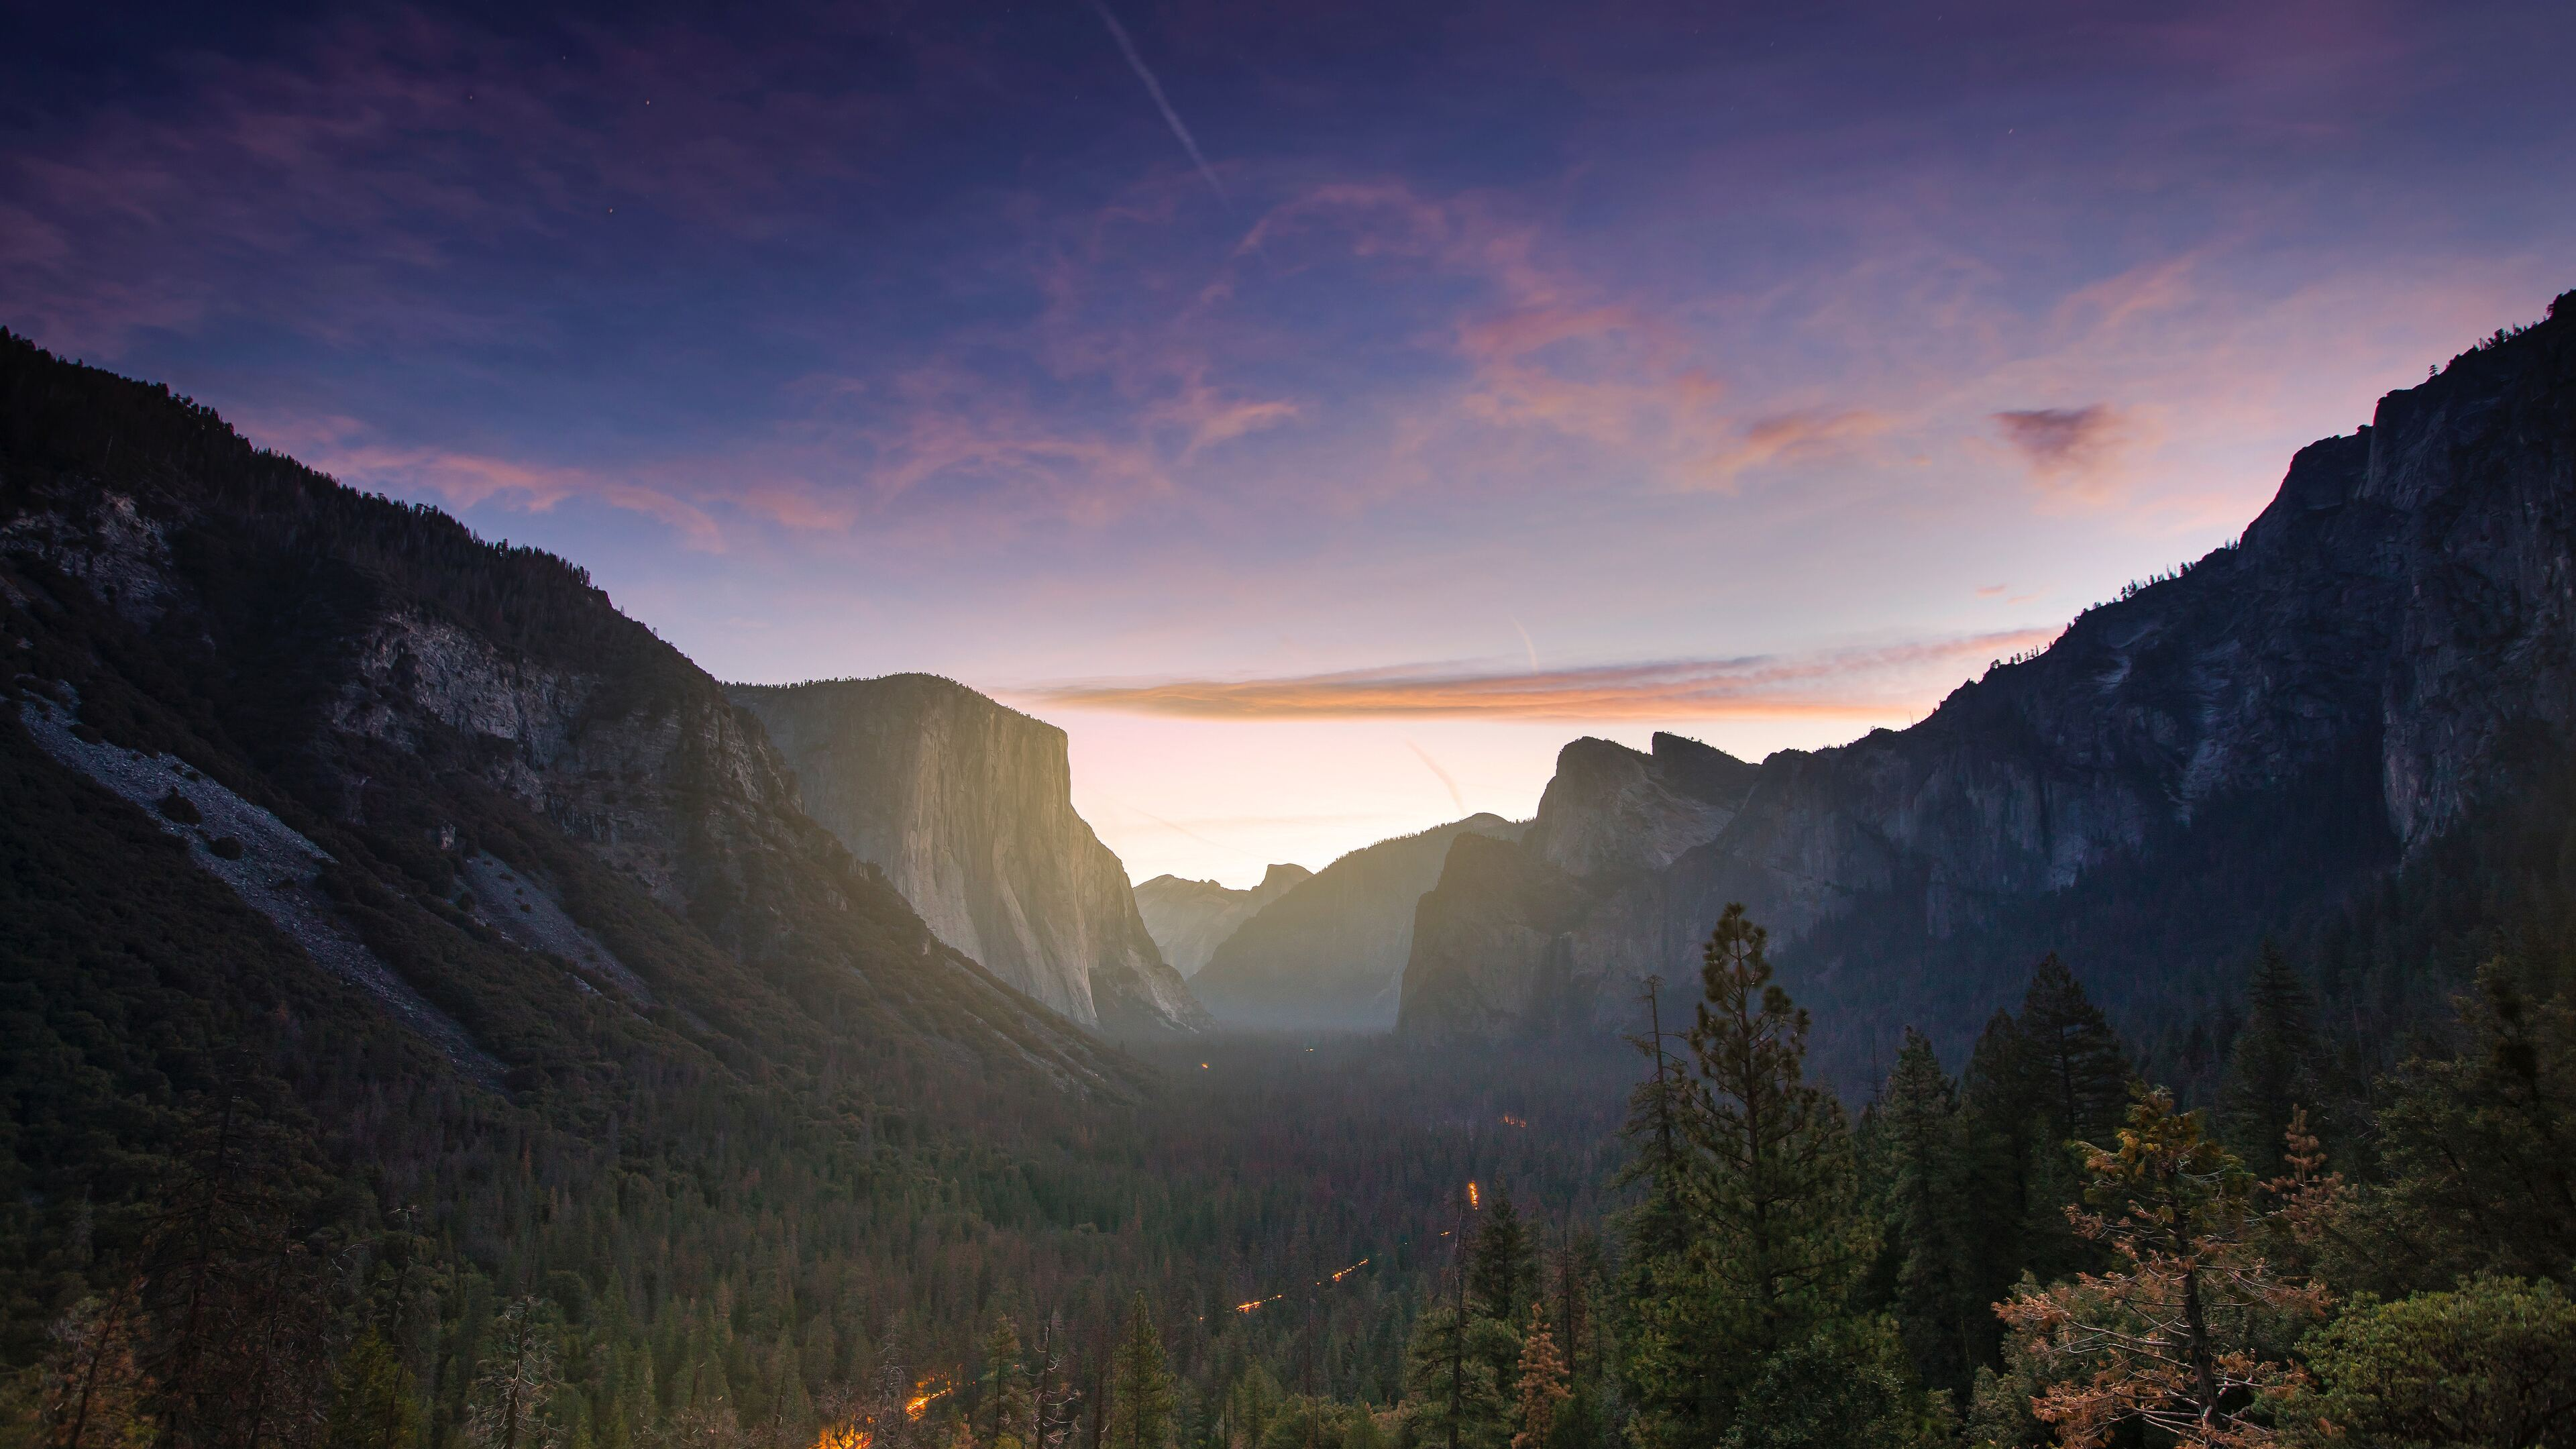 yosemite-morning-5k-6x.jpg